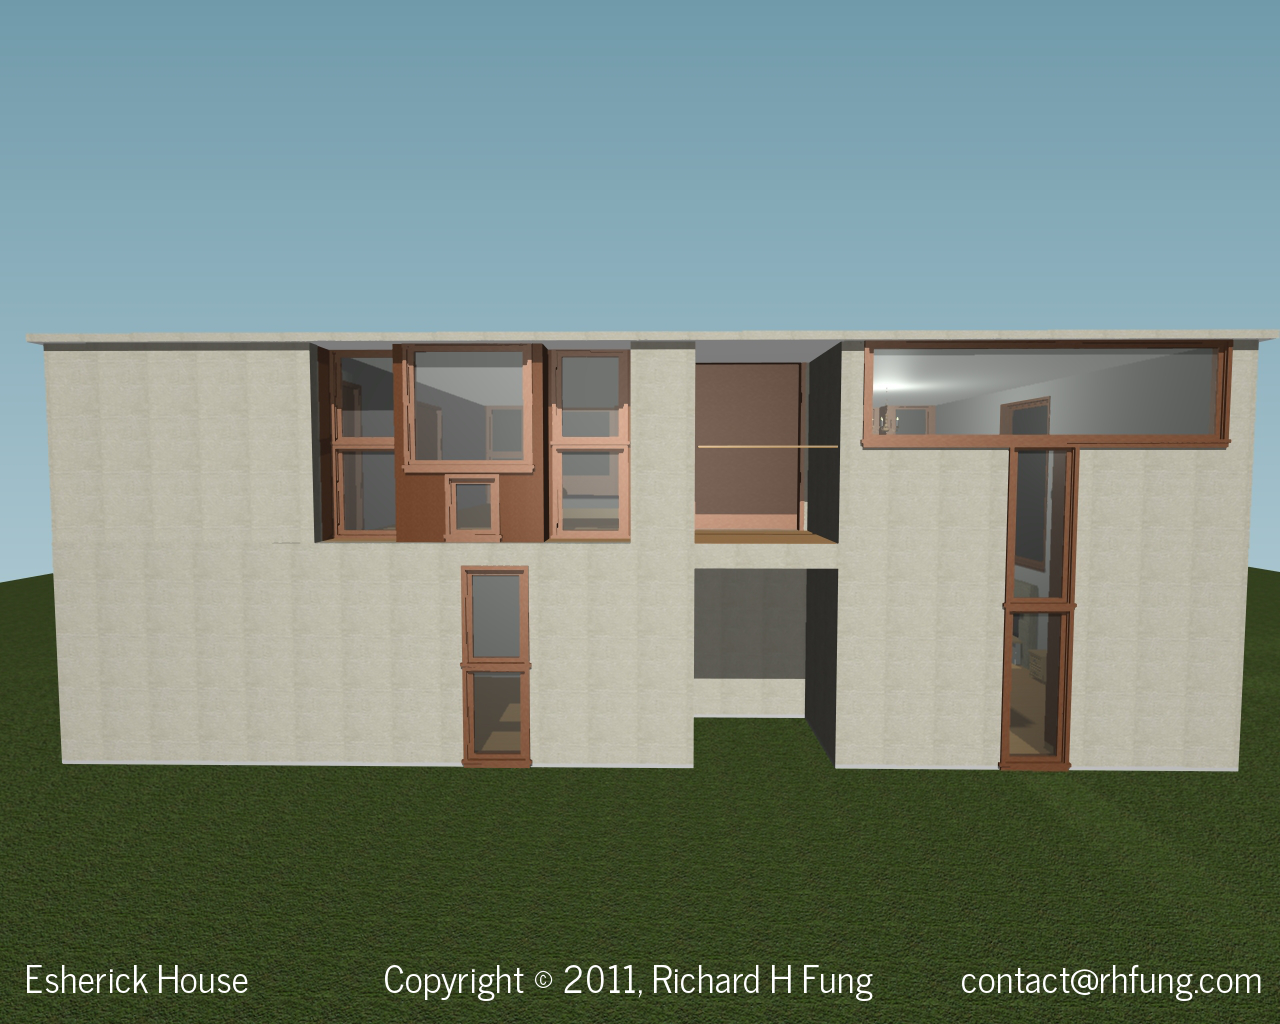 Esherick House front of house in 3D rendering